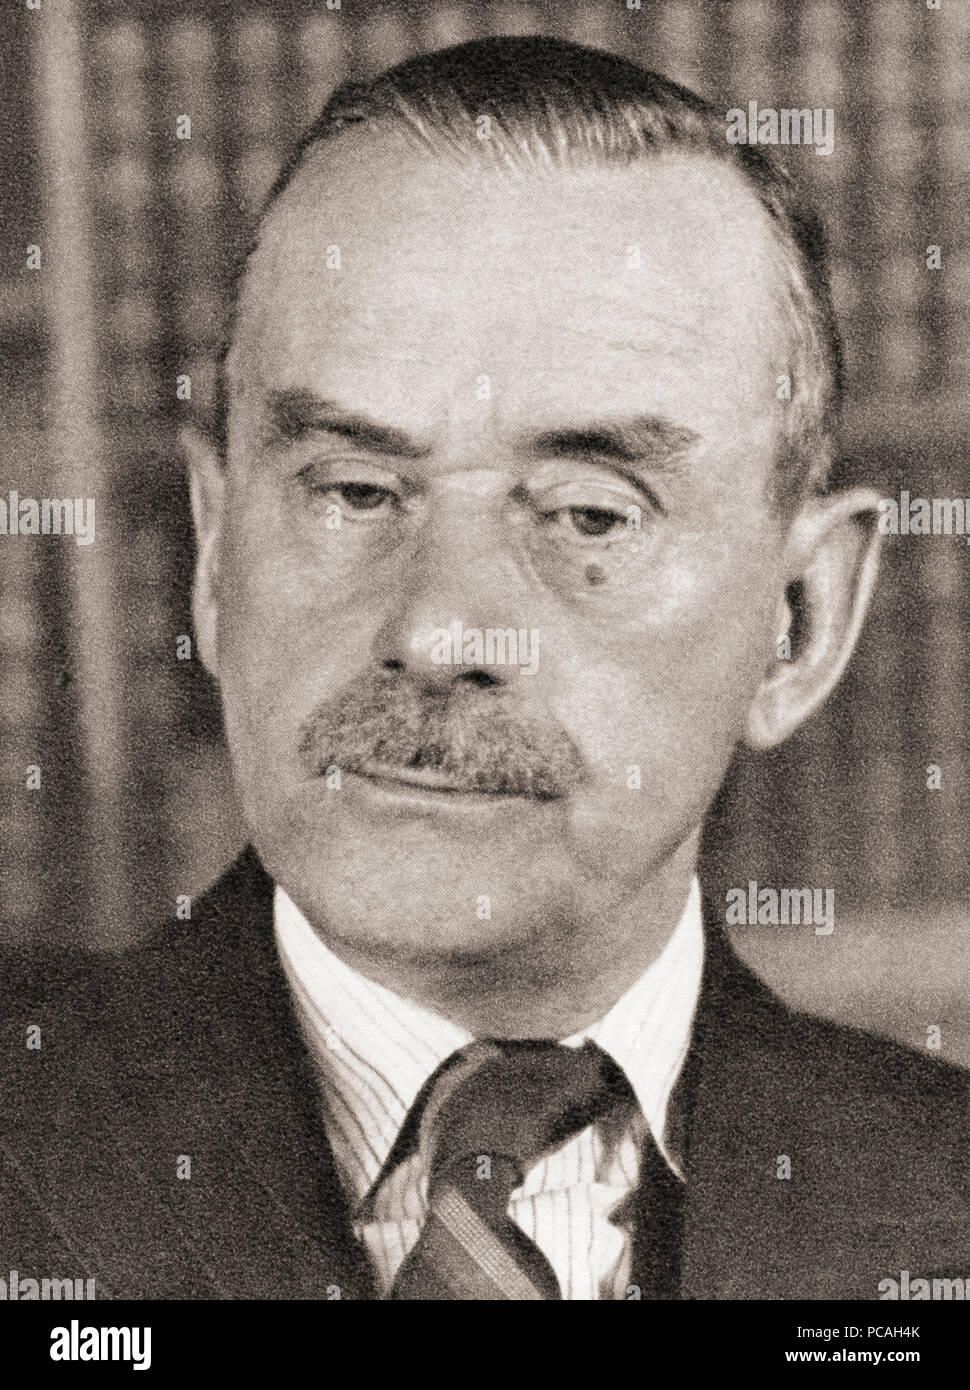 Paul Thomas Mann, 1875 – 1955.  German novelist, short story writer, social critic, philanthropist, essayist, and the 1929 Nobel Prize in Literature laureate. After a contemporary print. - Stock Image